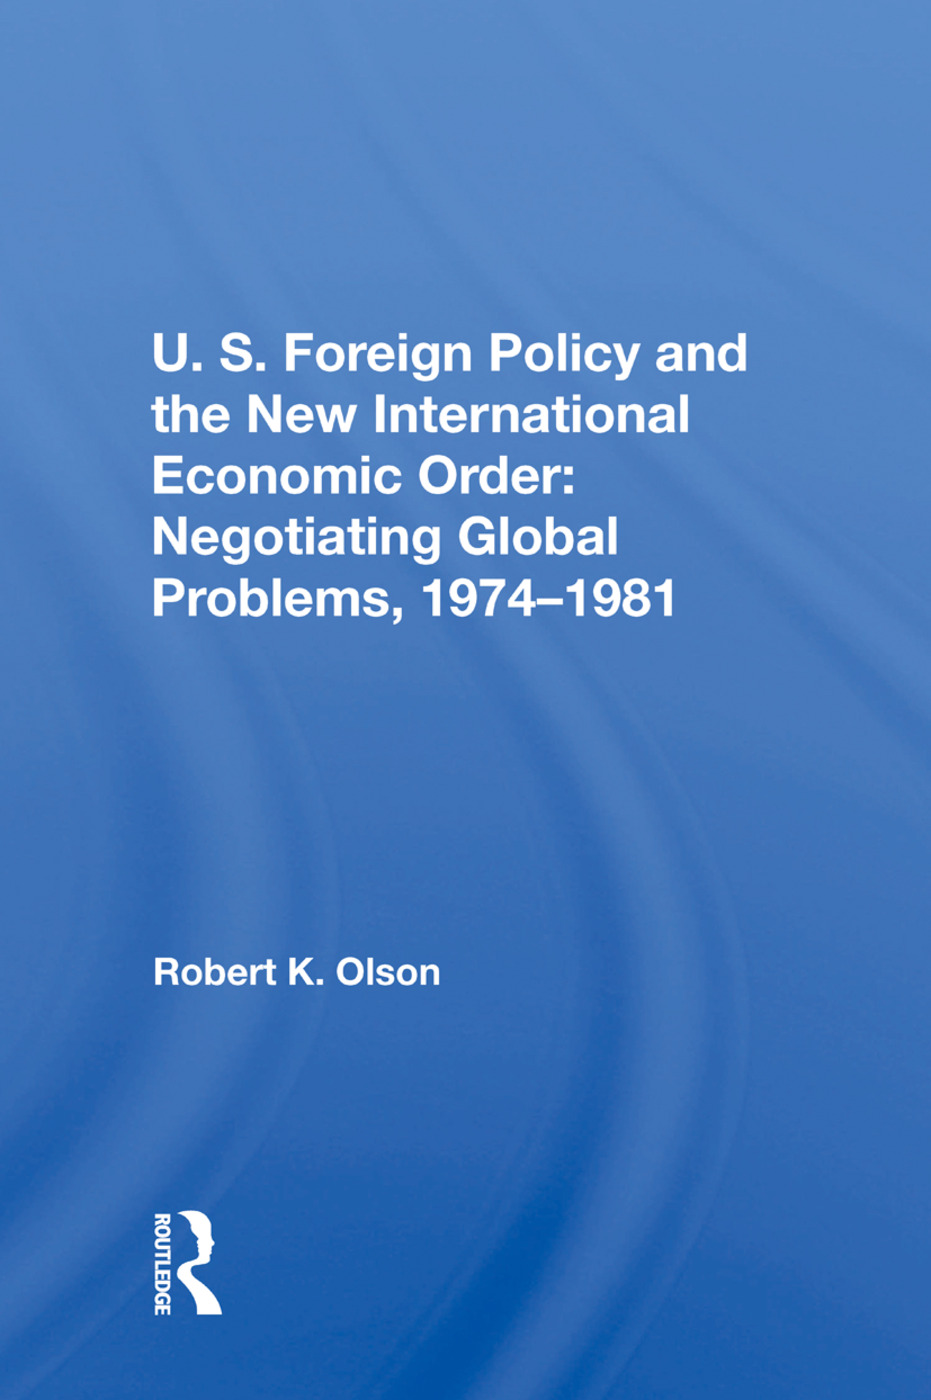 U.S. Foreign Policy And The New International Economic Order: Negotiating Global Problems, 1974-1981 book cover